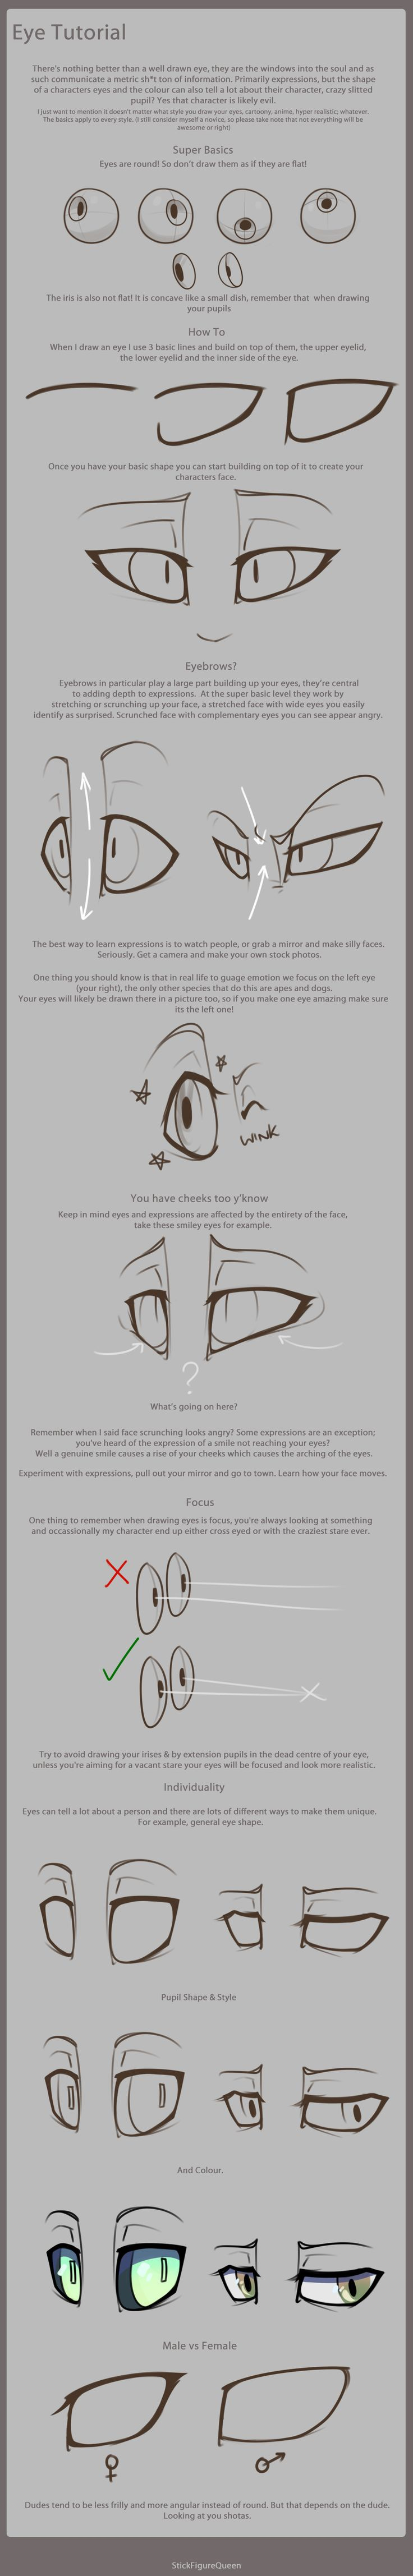 Eye Tutorial by StickFigureQueen.deviantart.com on @deviantART